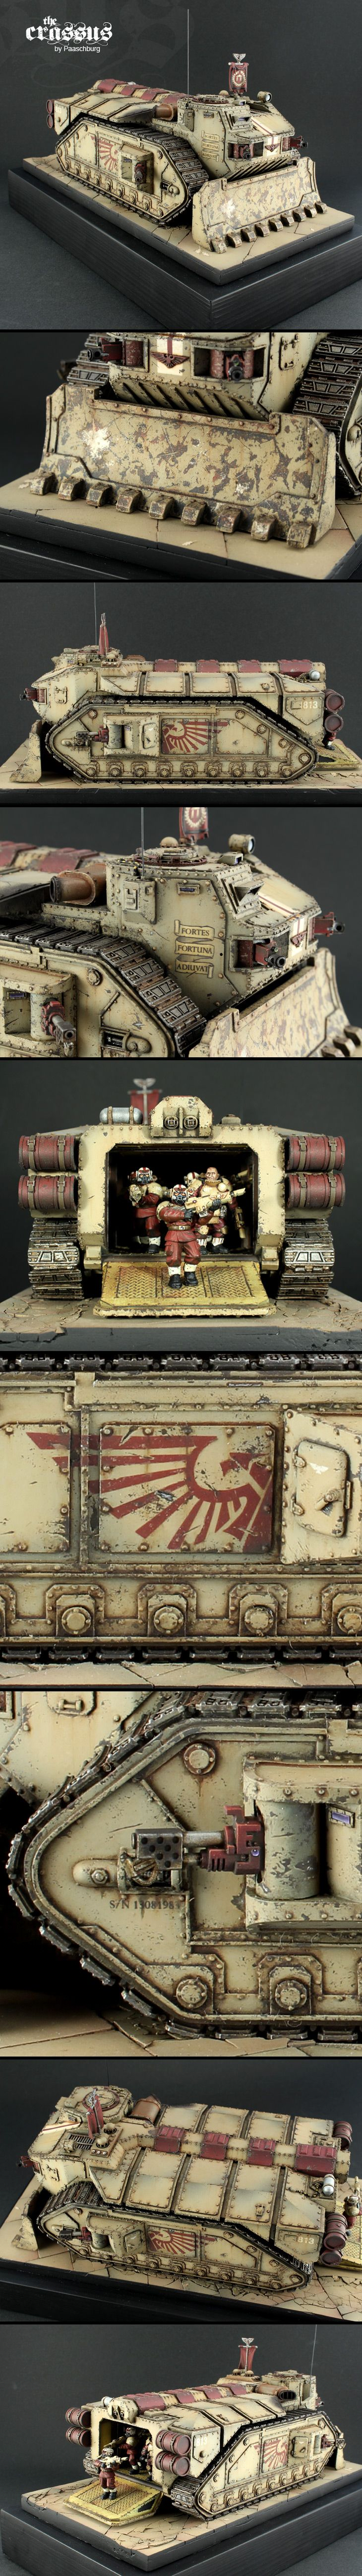 40k - Imperial Guard Crassus Transport by Paaschburg